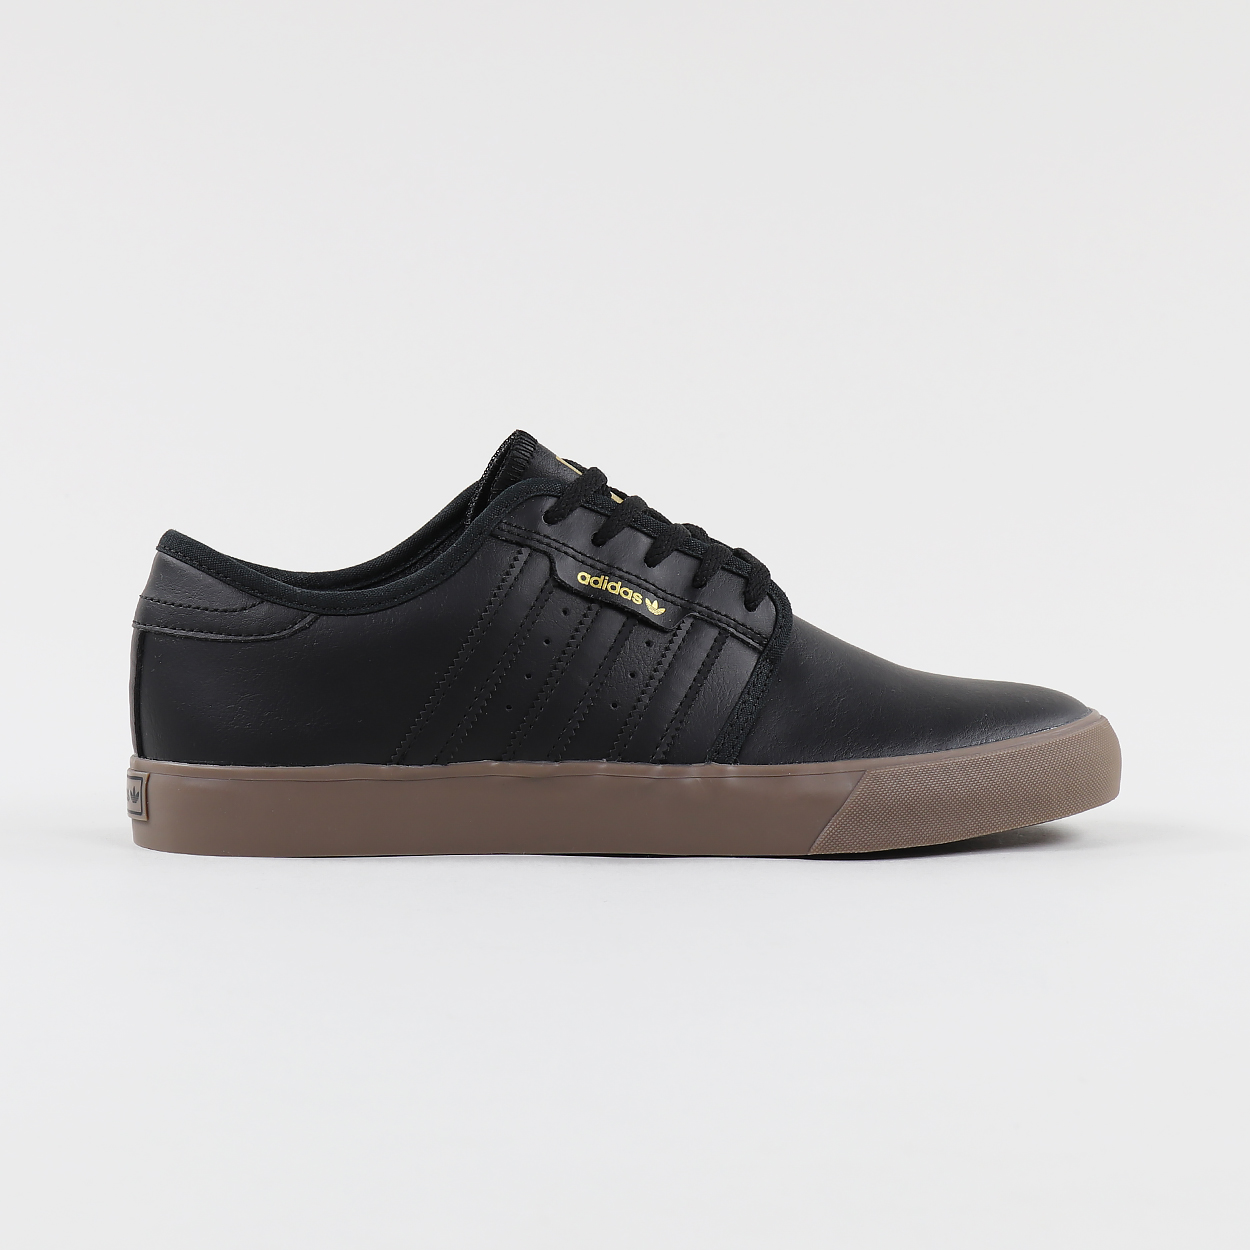 Adidas Skateboarding Seeley Pro Leather Shoes Black Gold Gum £40.37 1294d4997